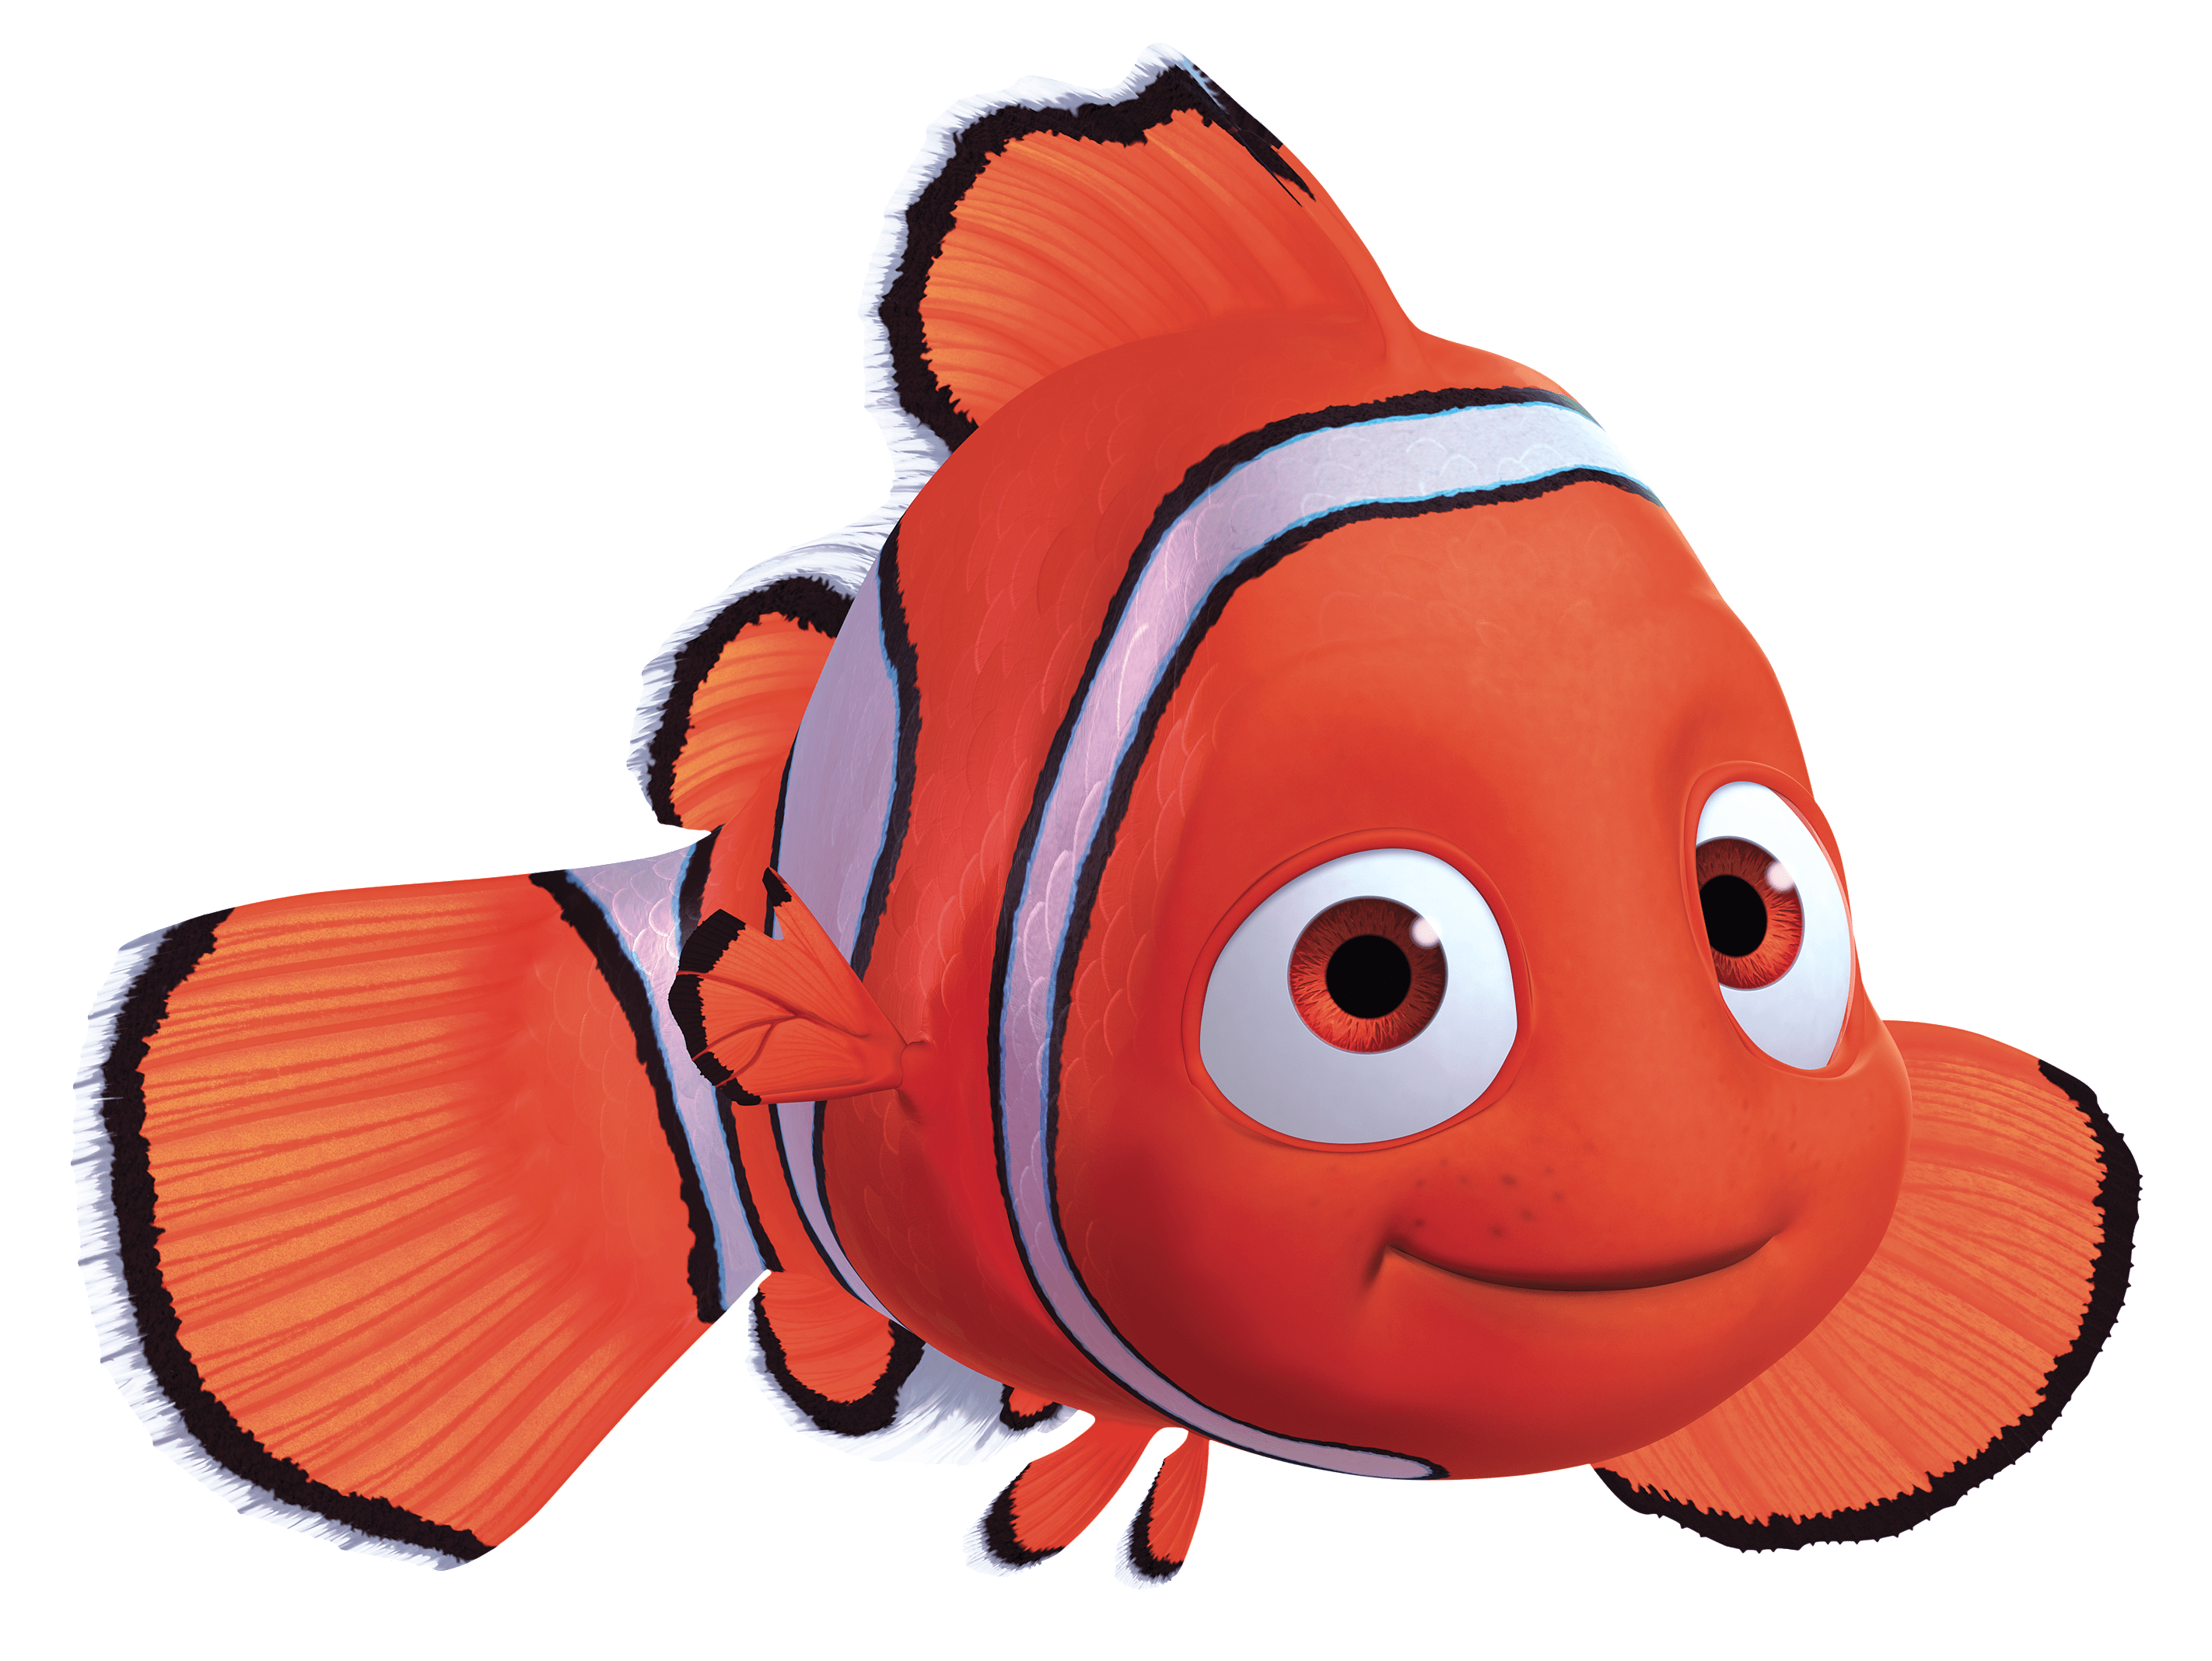 Finding Nemo Is the Saddest Story Ever • Op-Ed